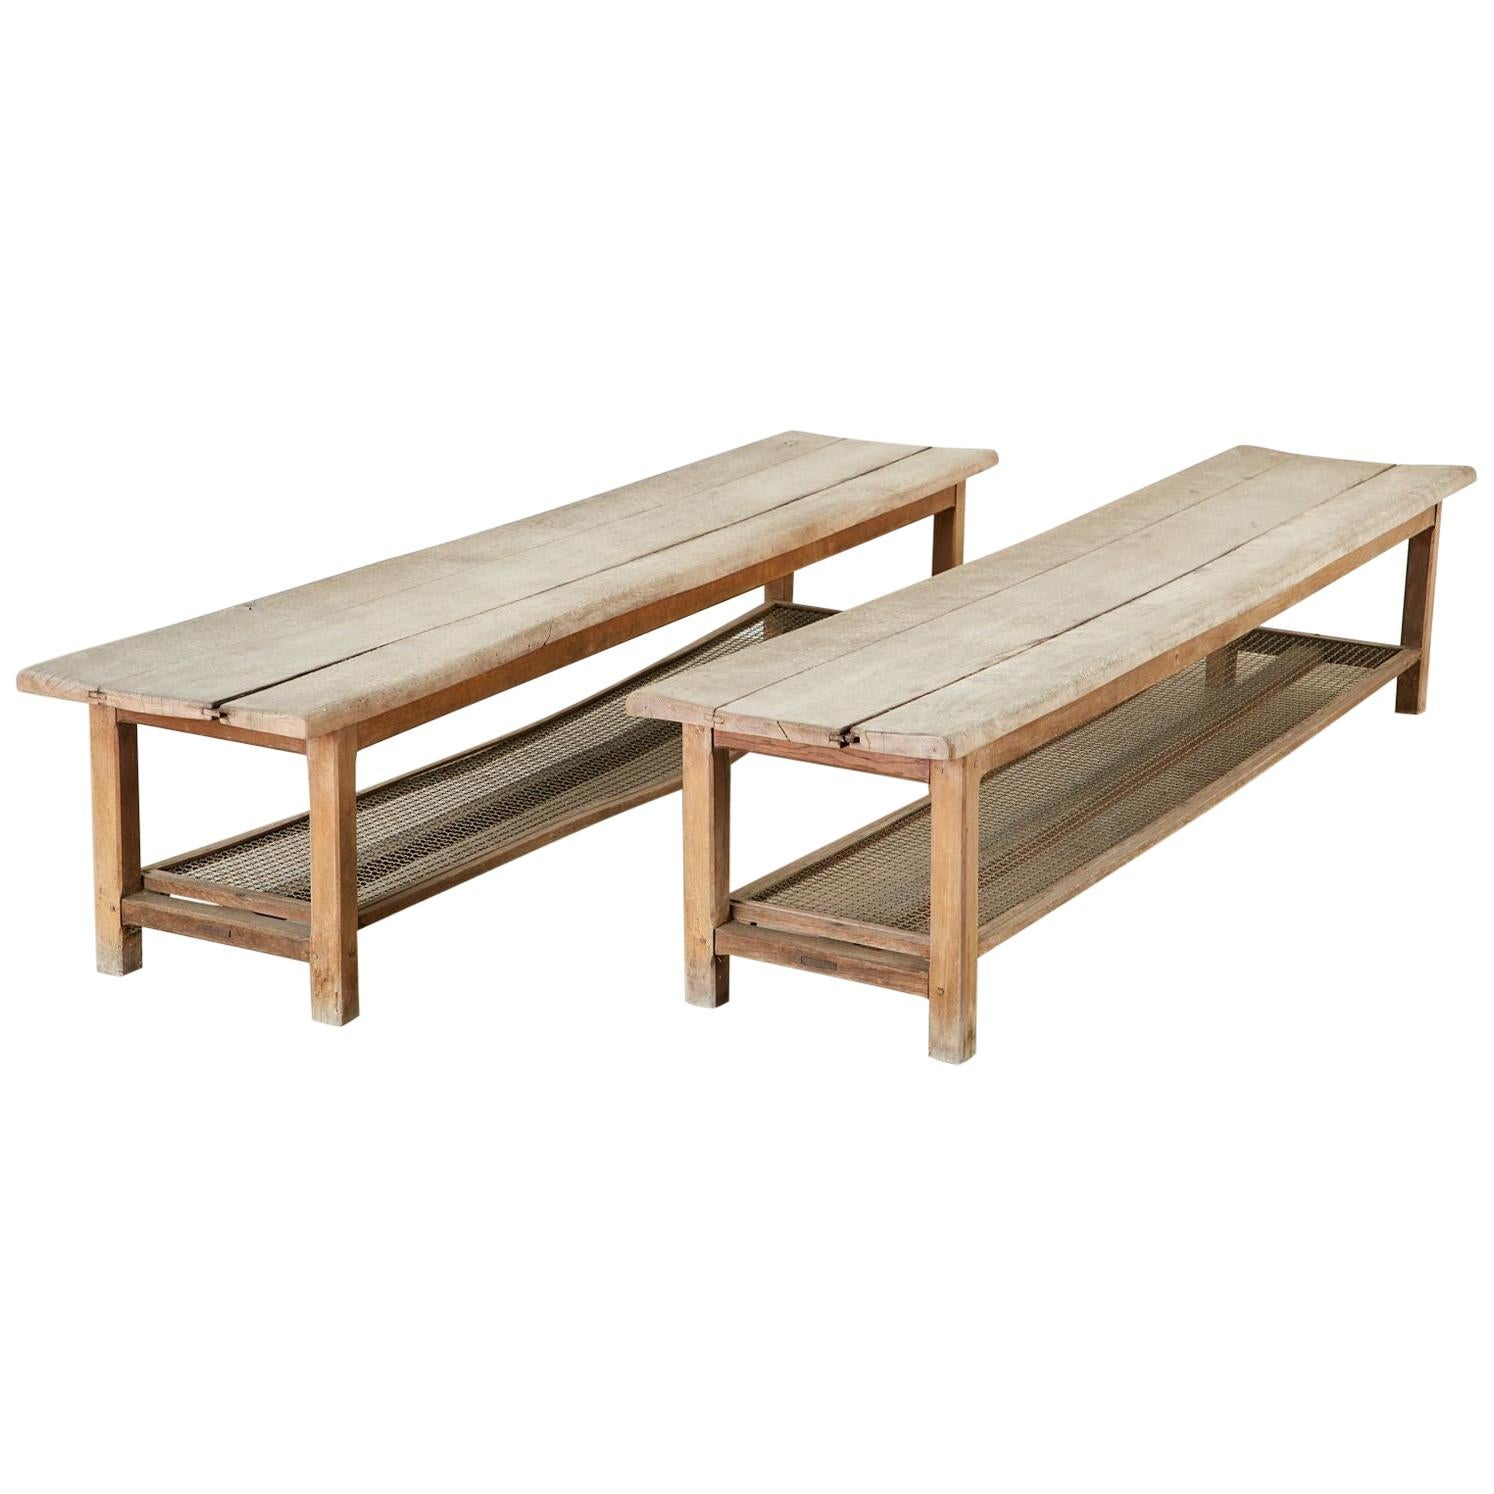 Pair of Weathered Pine Benches with Storage Shelves